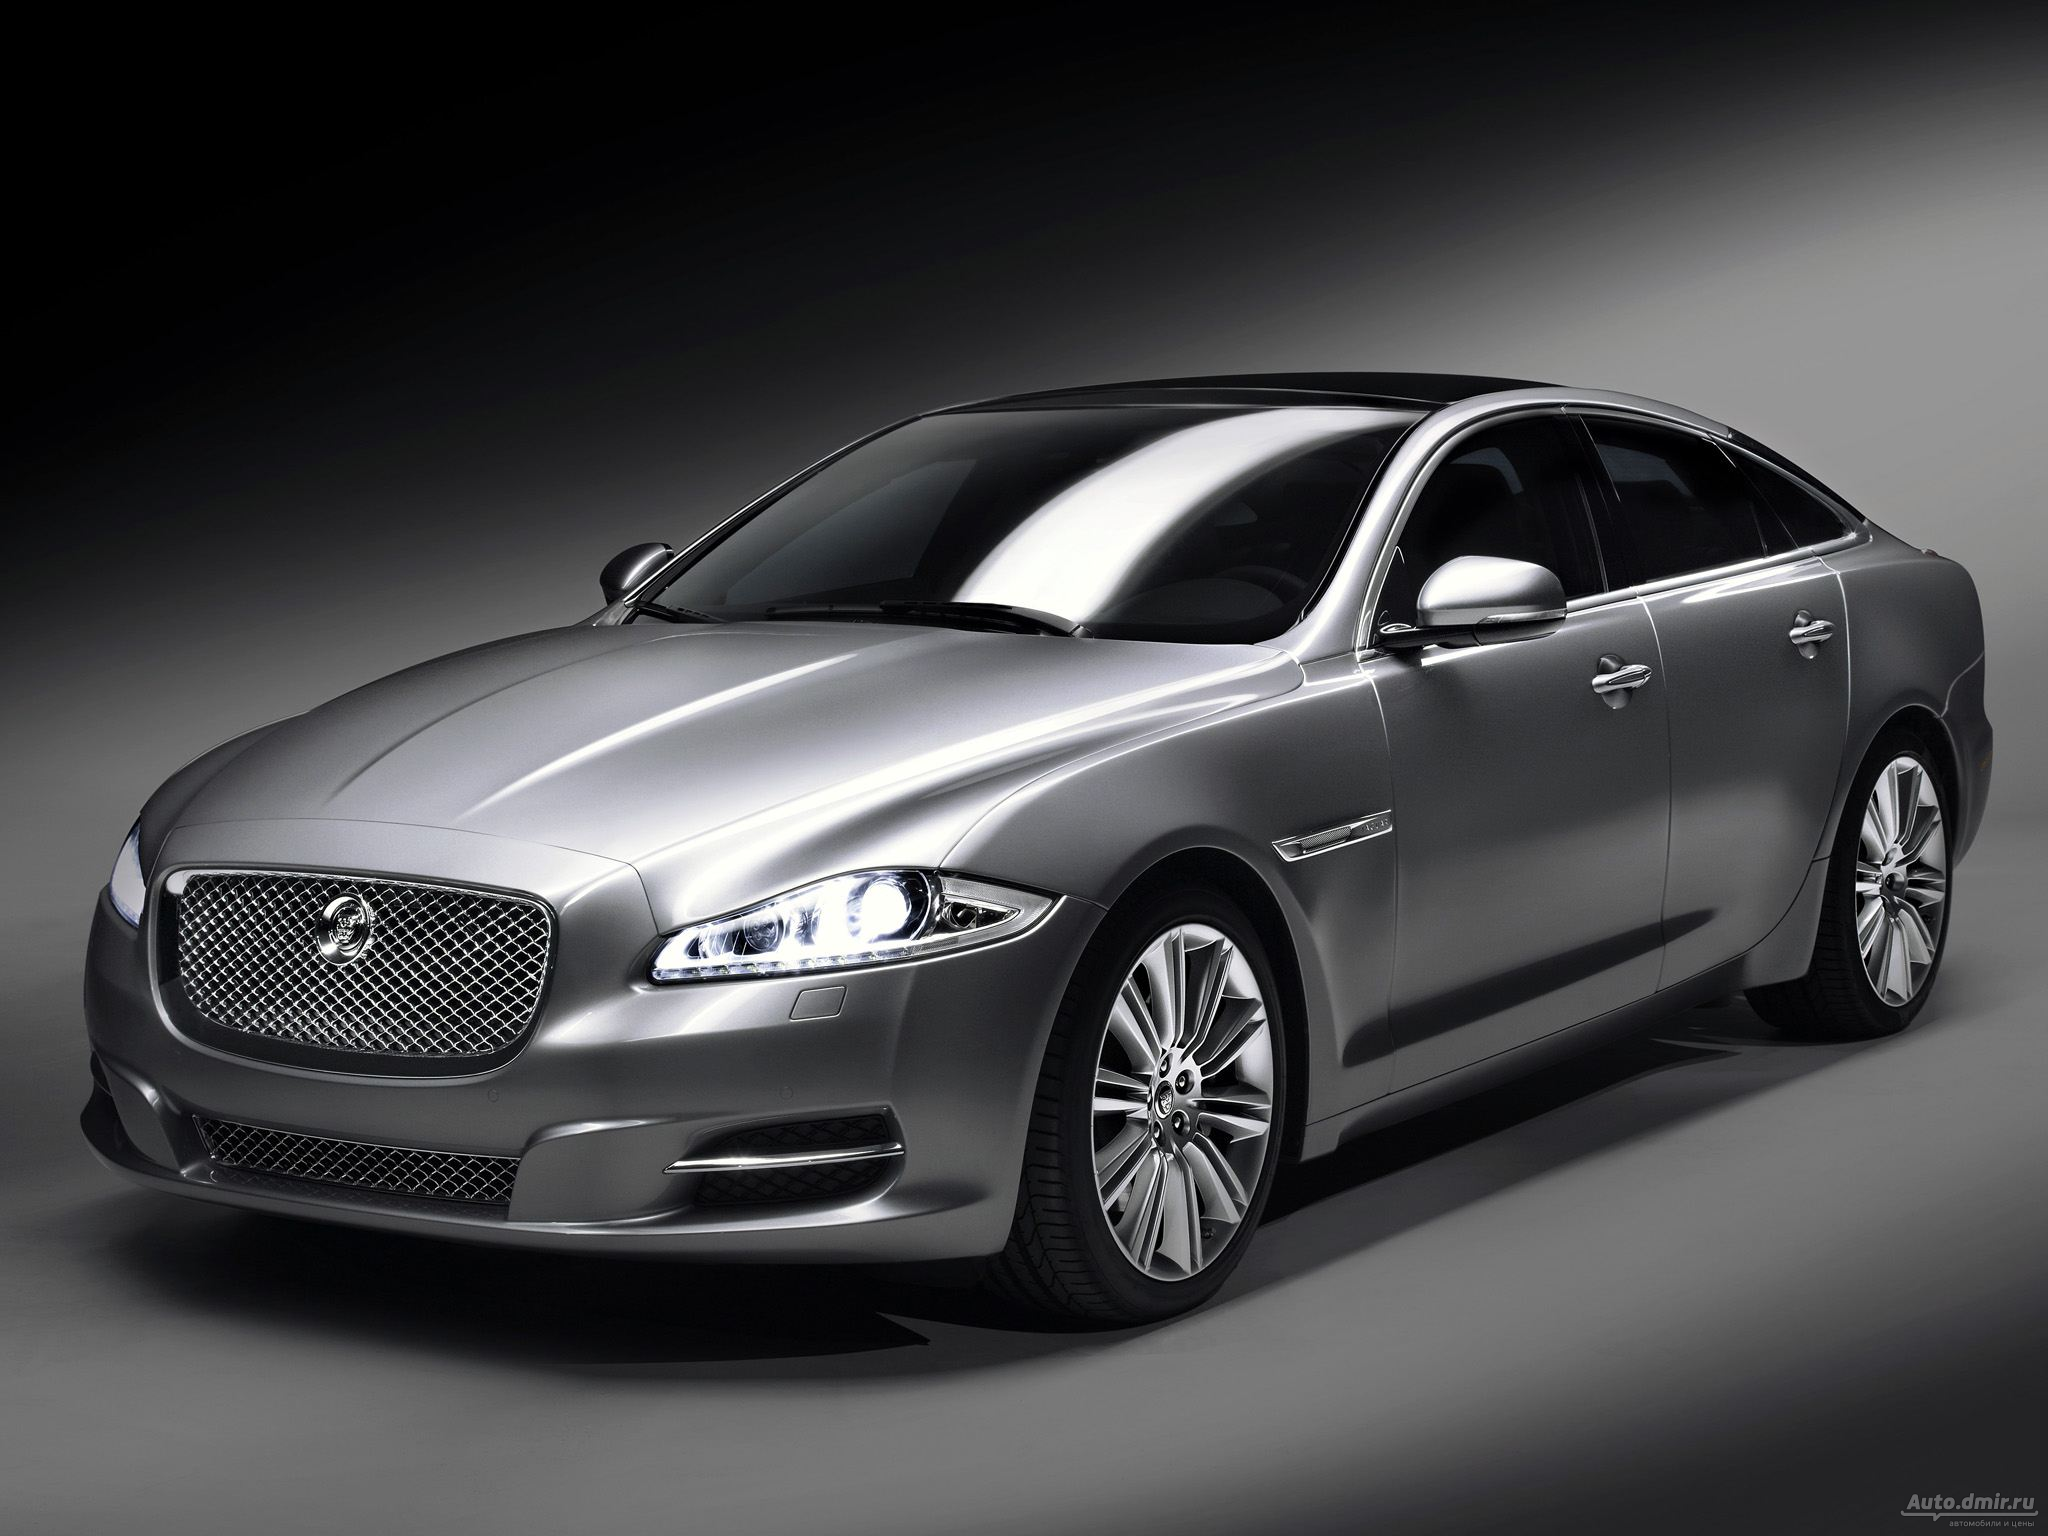 2018 Jaguar Xj Redesign Specs Release Date And Price Http Carsinformations Wp Content Uploads 2017 04 Concept Jpg Pinterest